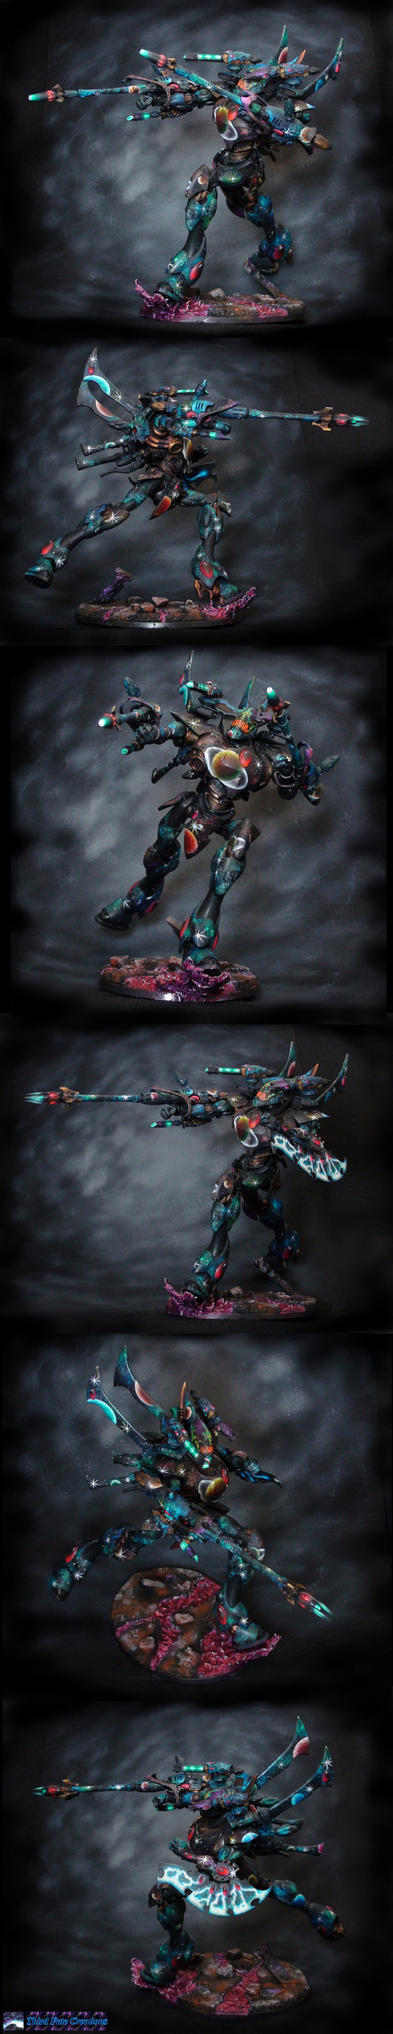 Eldar Wraith Knight With Cannons by Atropos907